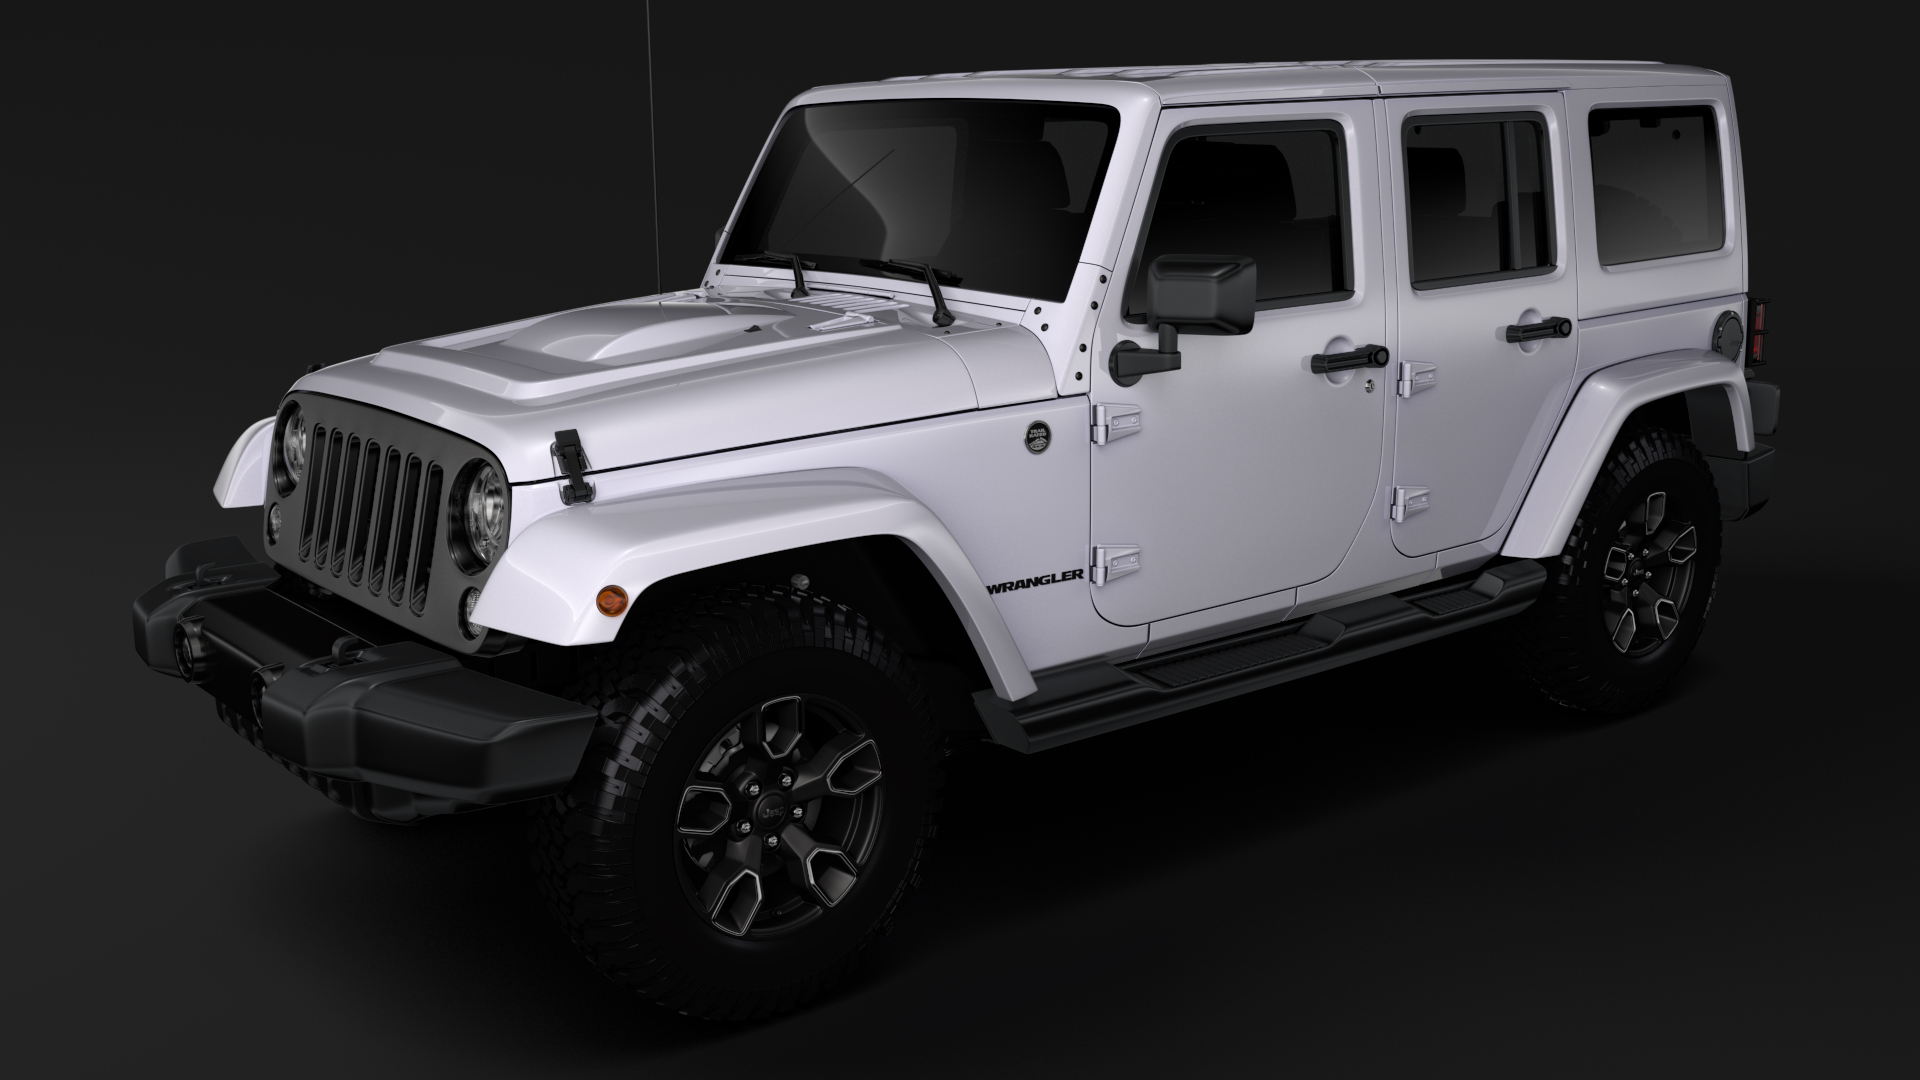 jeep wrangler unlimited smoky mountain jk 2017 3d model max fbx c4d lwo ma mb hrc xsi obj 276724